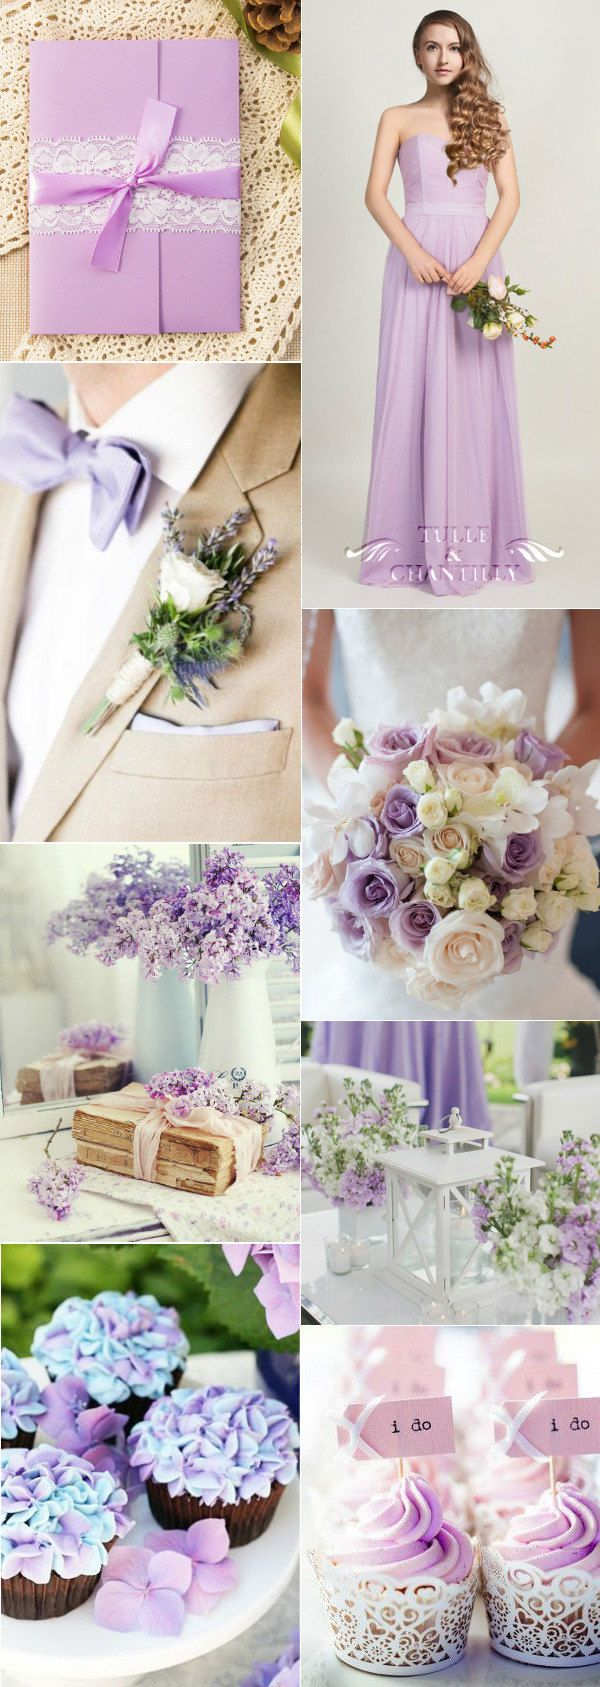 28 Light Purple Rustic Wedding Decorations Shades Of Lilac